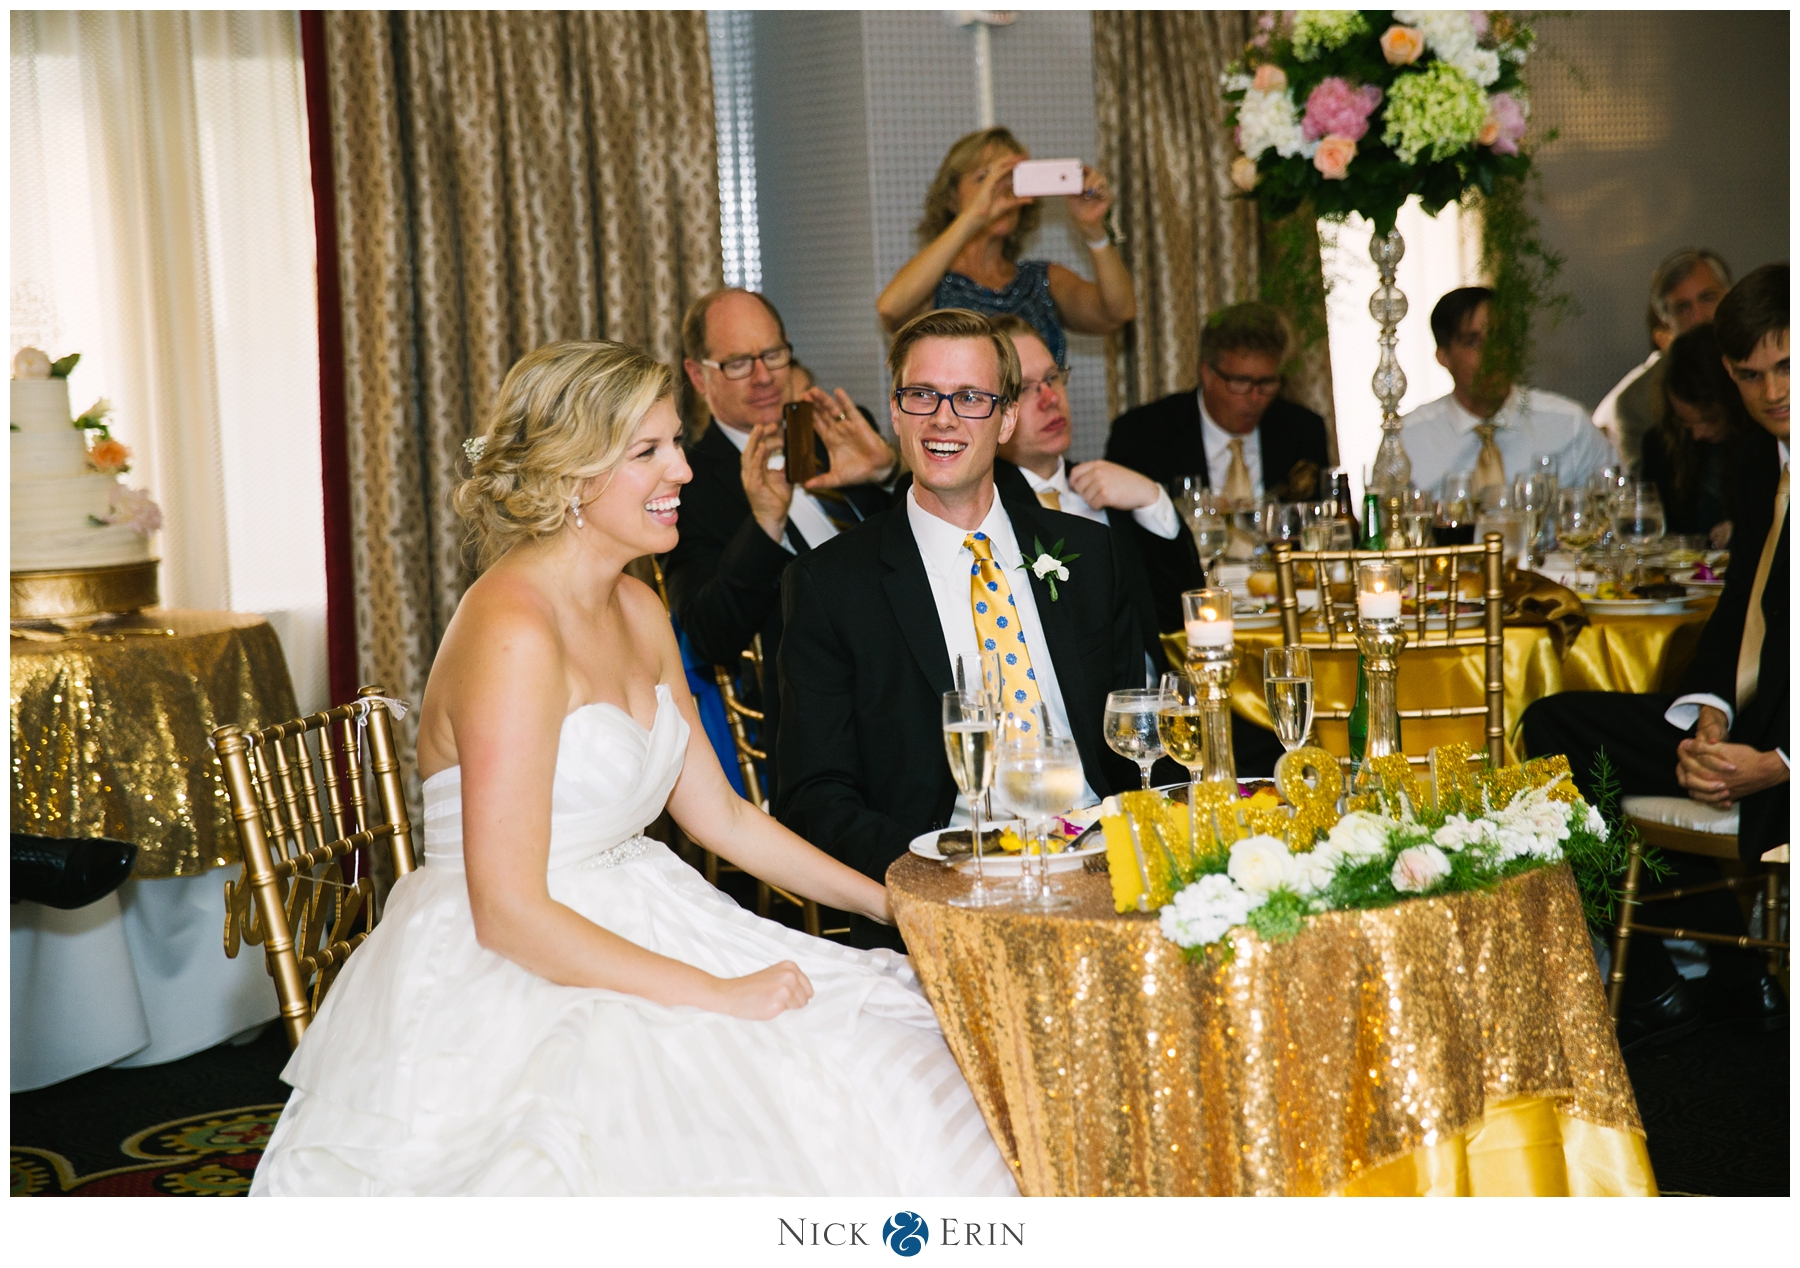 Donner_Photography_Washington DC Wedding_Rachel & Taylor_0057